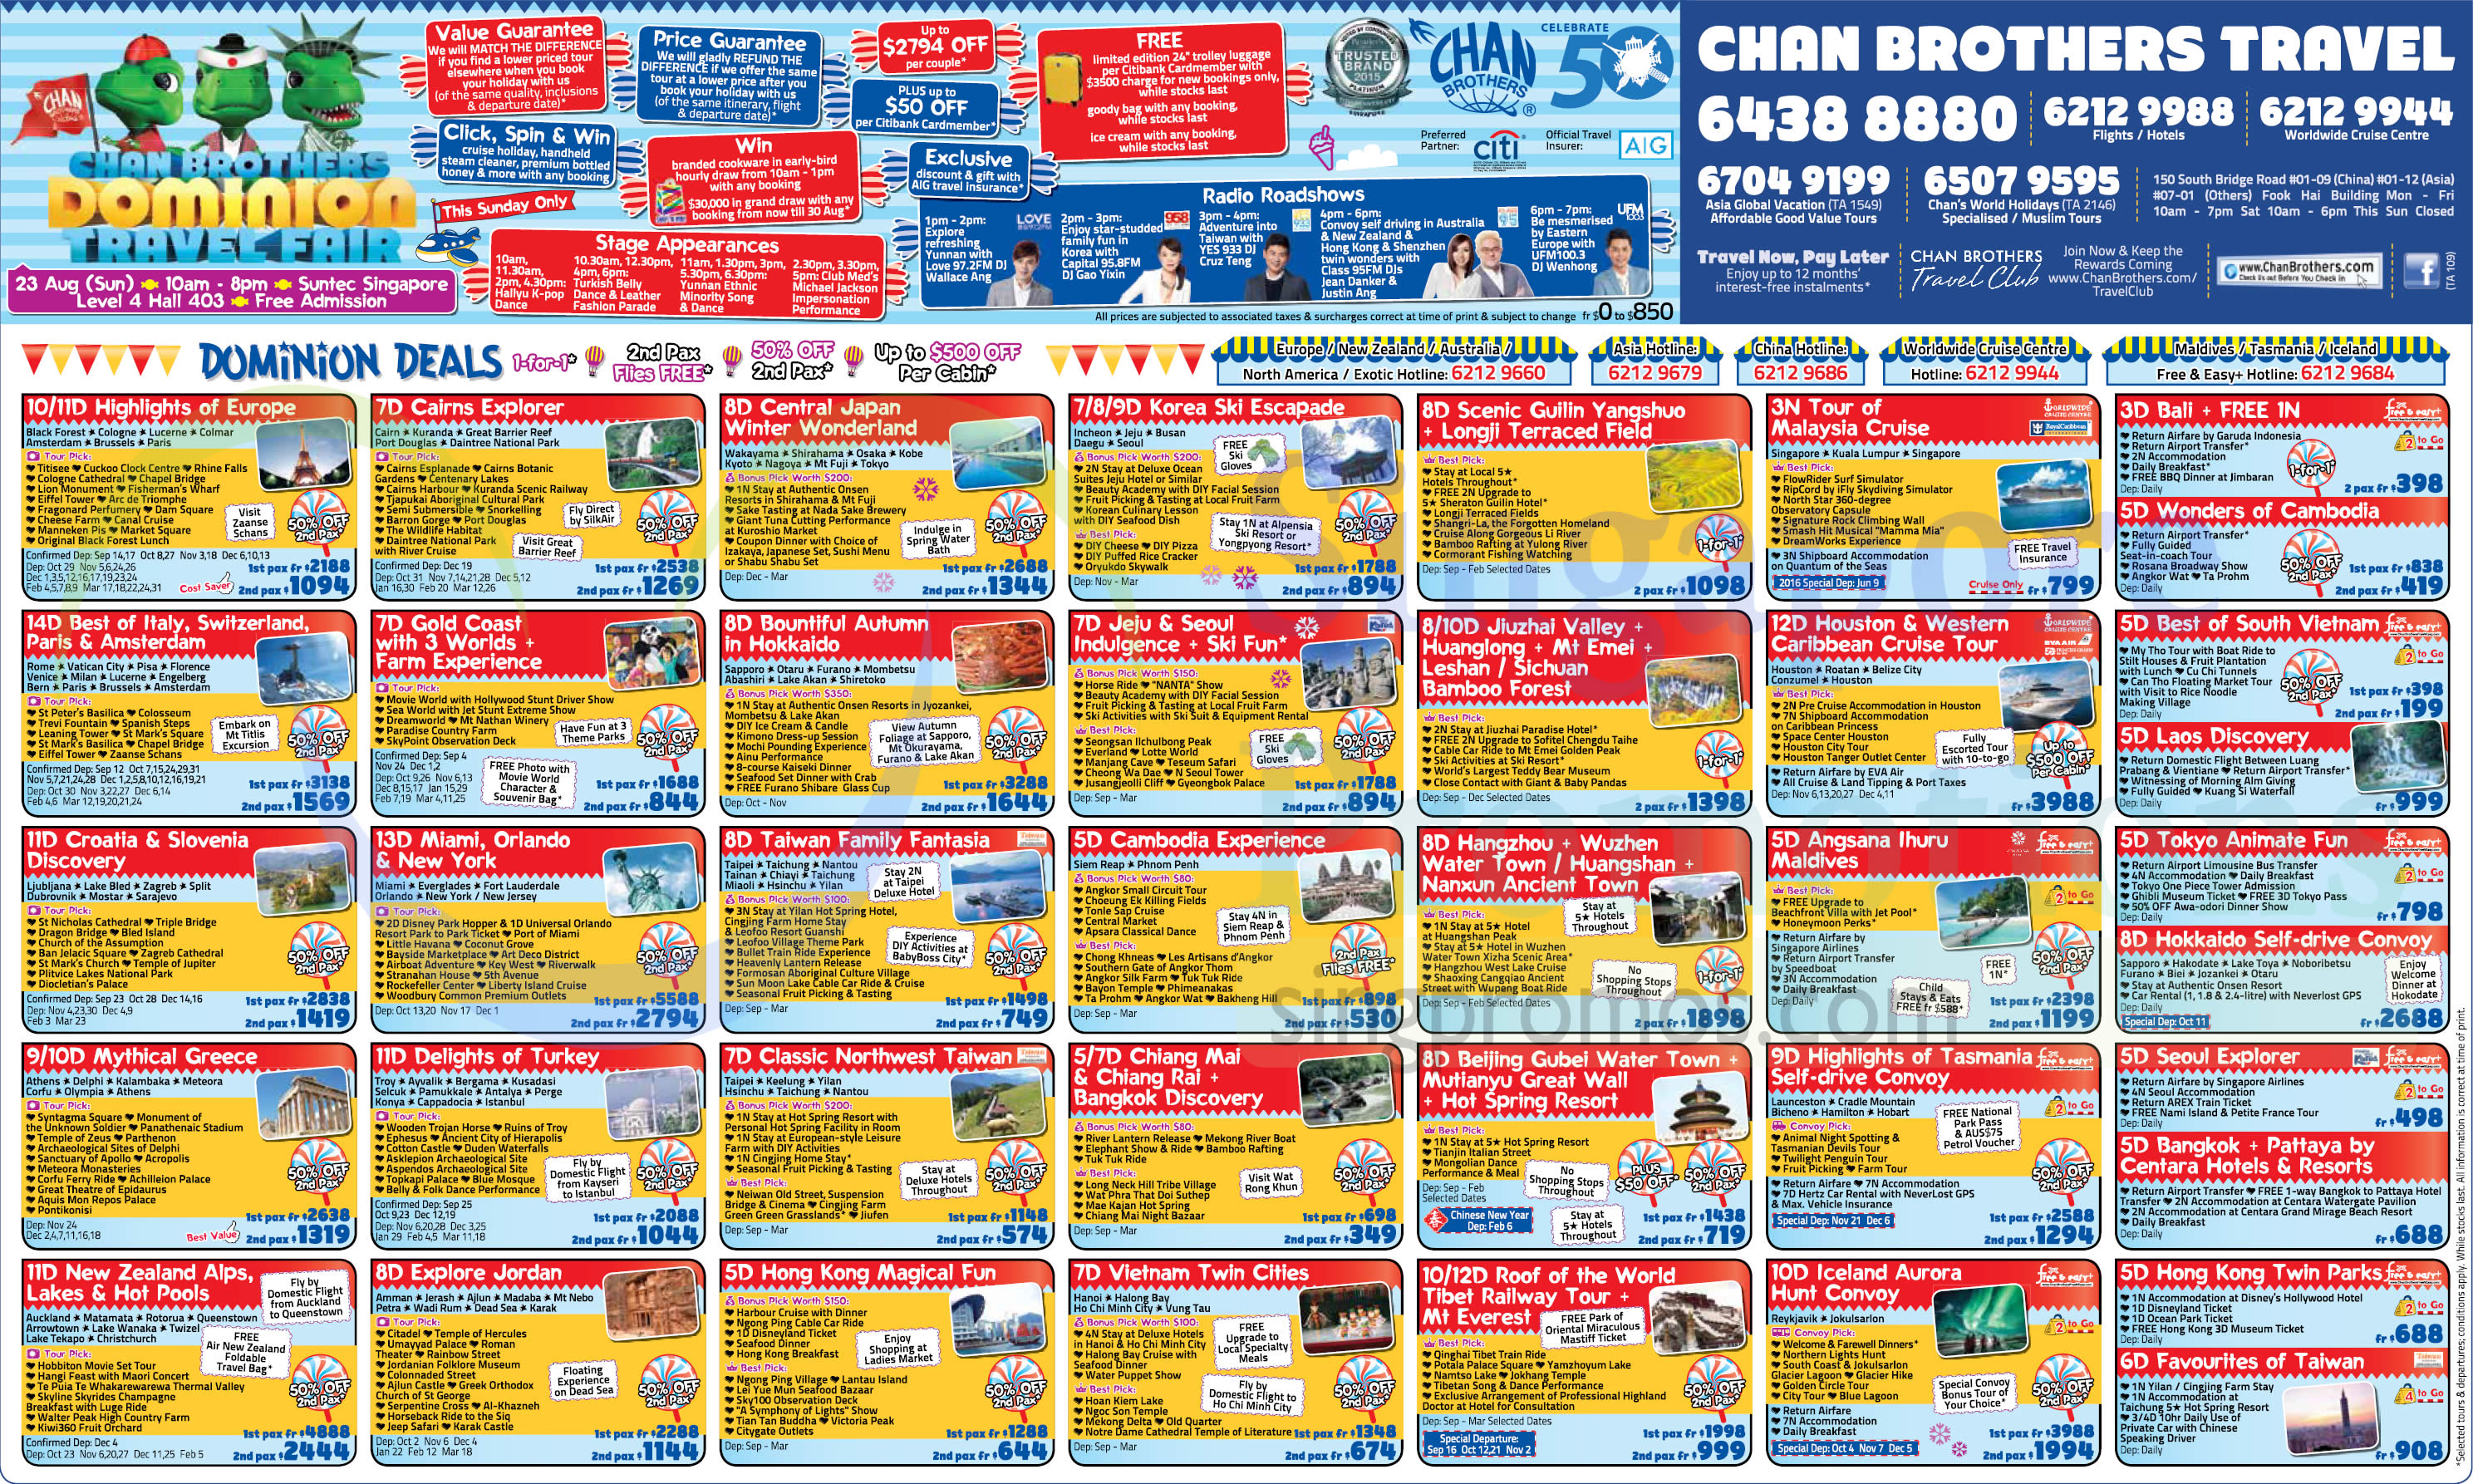 19 Aug Selected Travel Packages 187 Chan Brothers Dominion